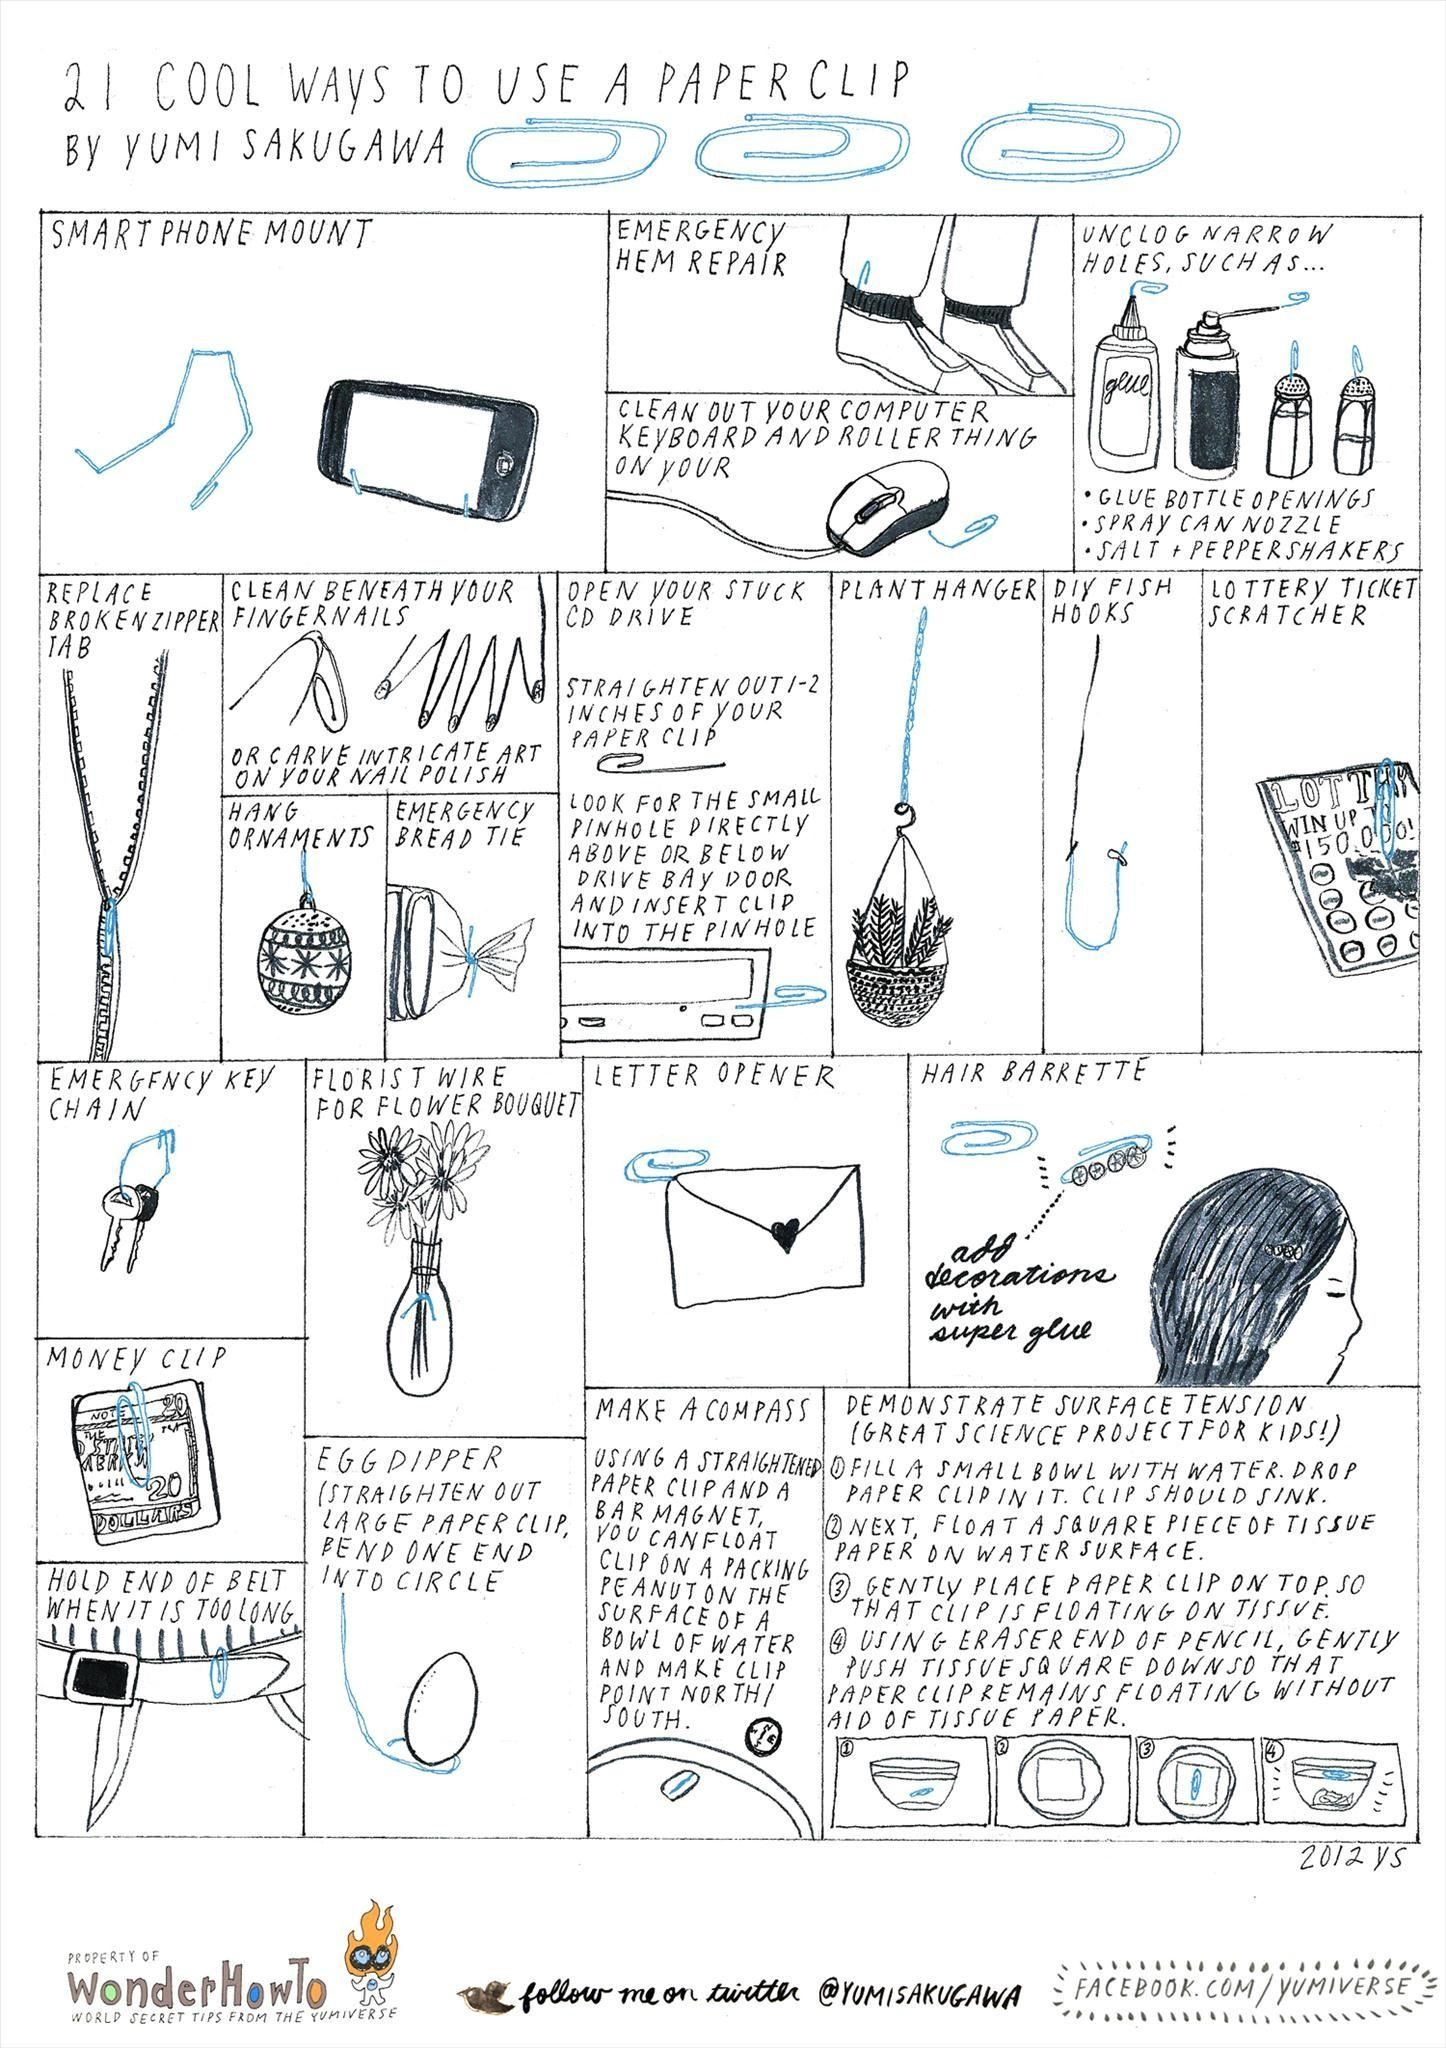 21 Cool Ways to Use a Paper Clip « The Secret Yumiverse